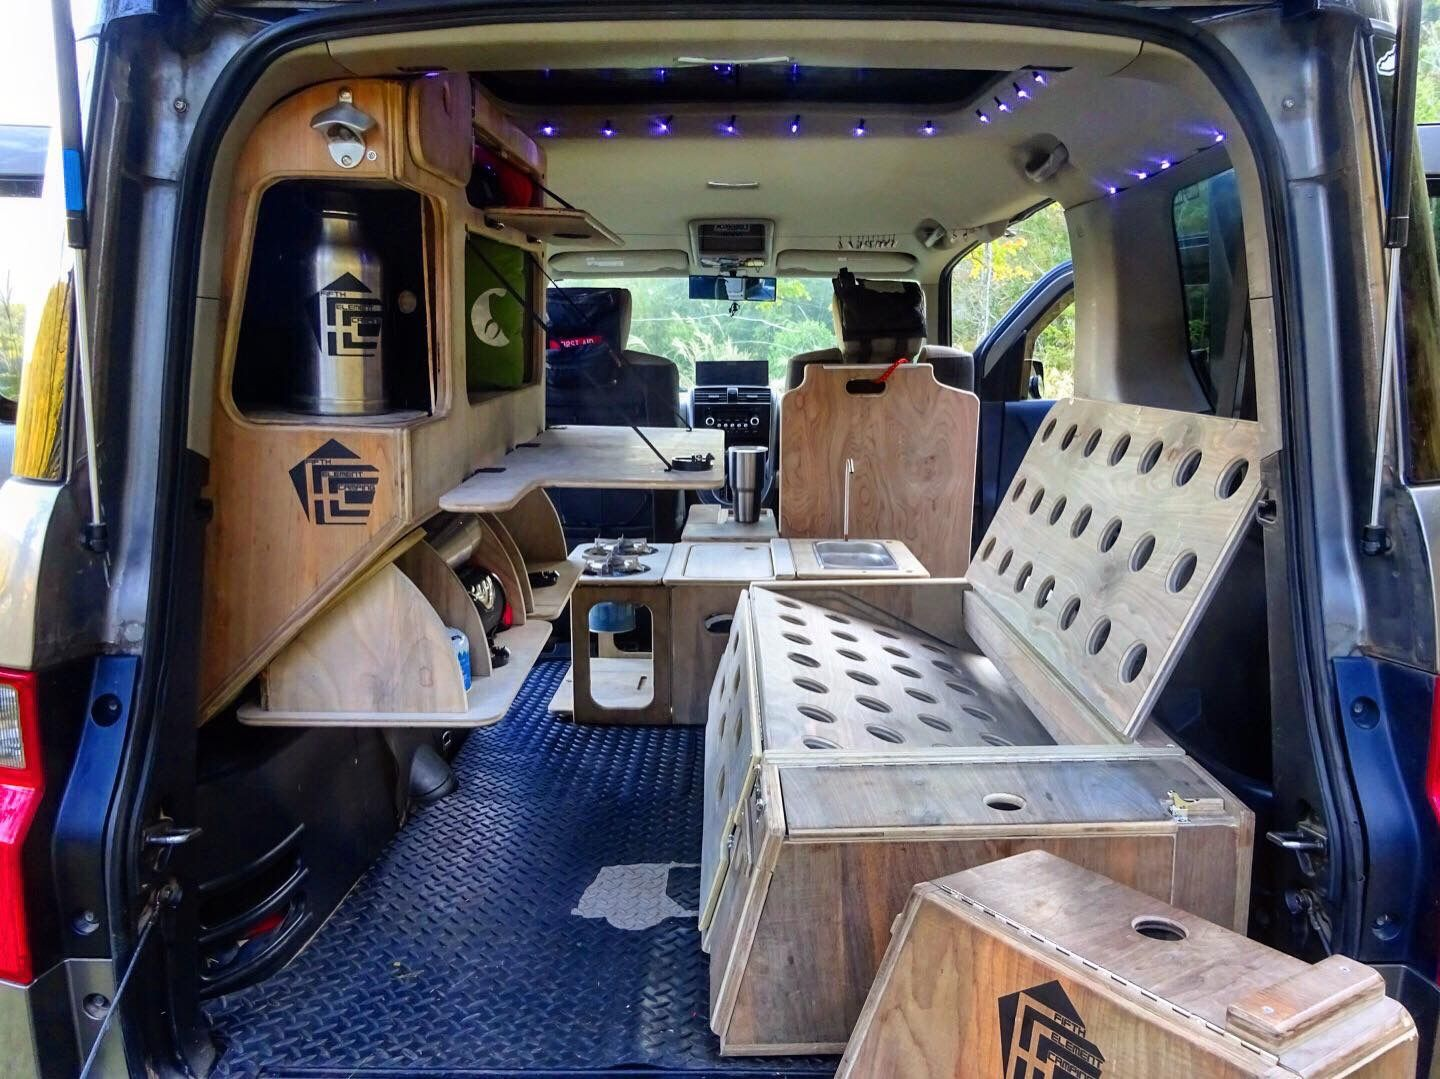 Pin by Micky Fwell on Honda Element Camper | Pinterest ...